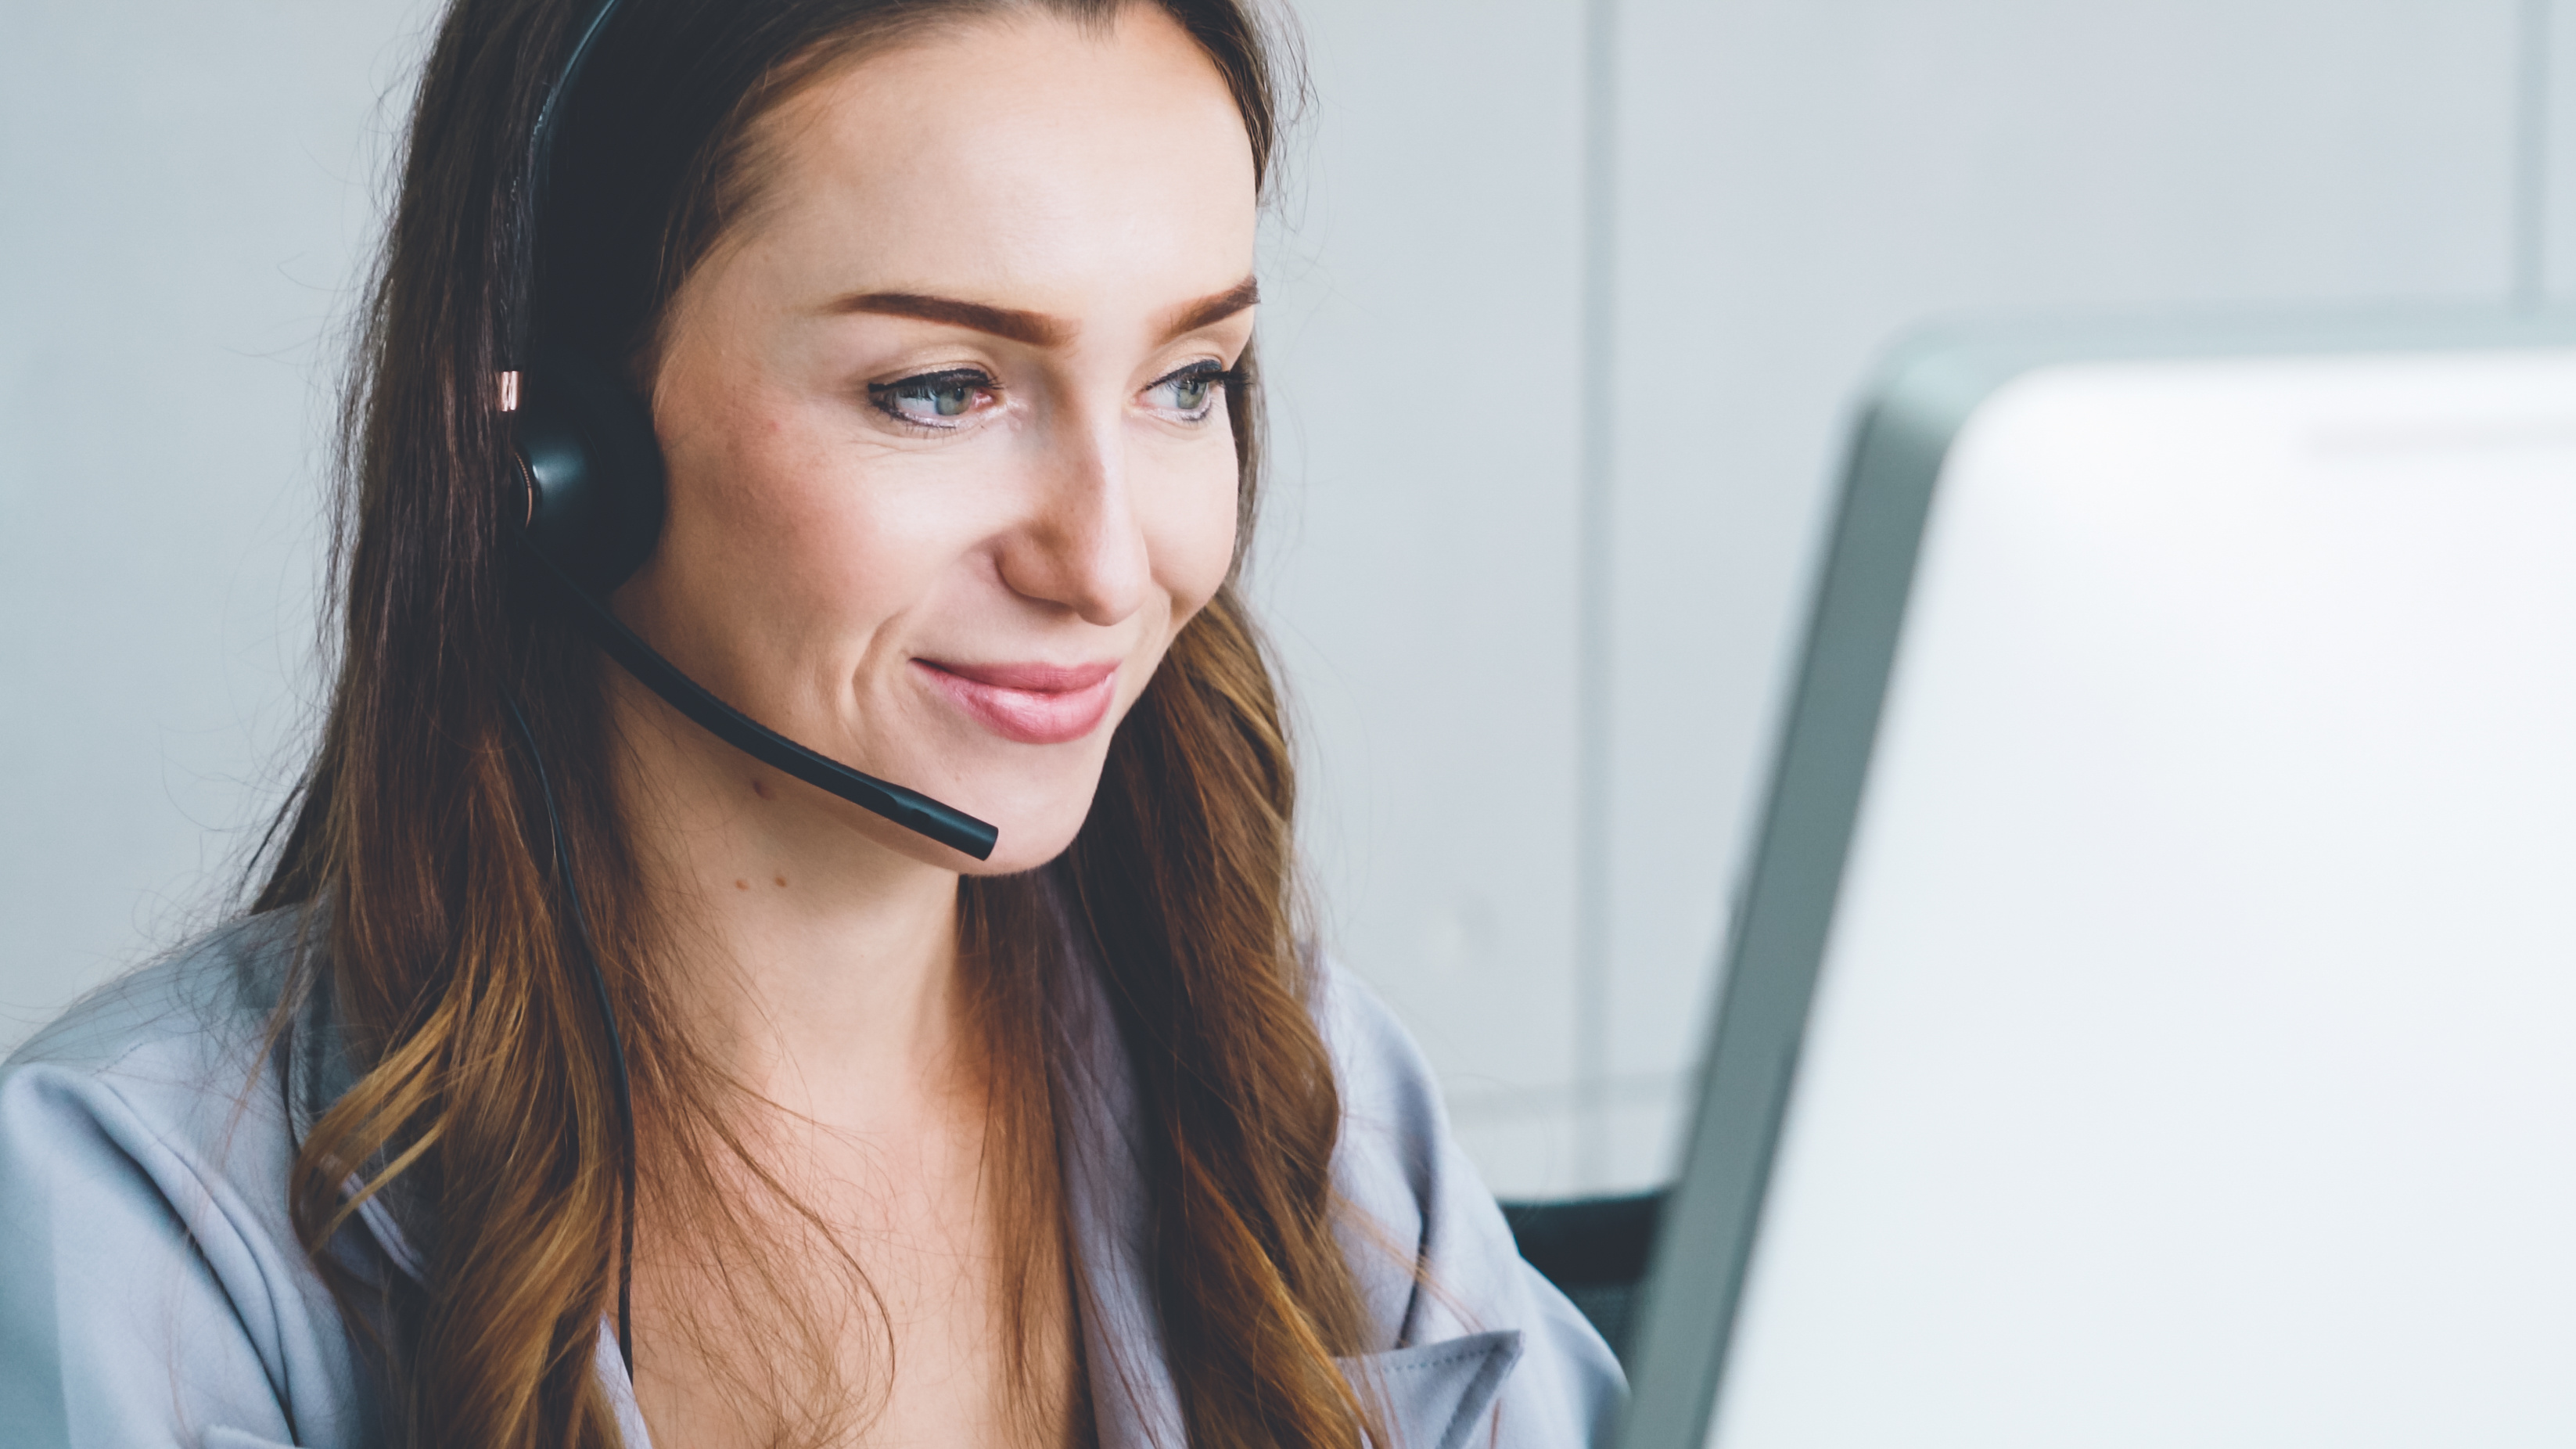 Lady with headset answering customer call